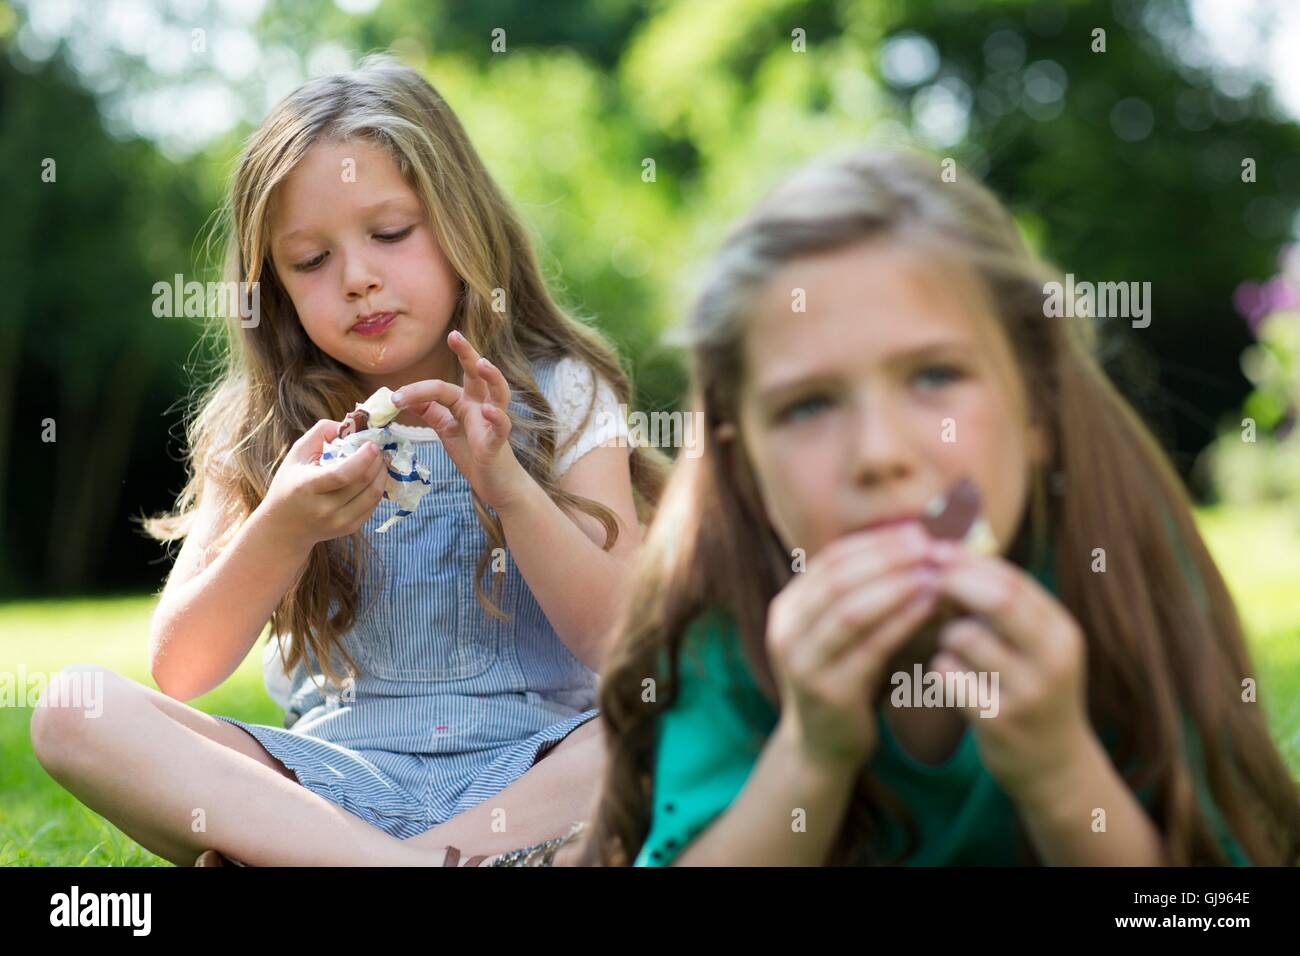 PROPERTY RELEASED. MODEL RELEASED. Girls eating ice-creams in the garden. - Stock Image